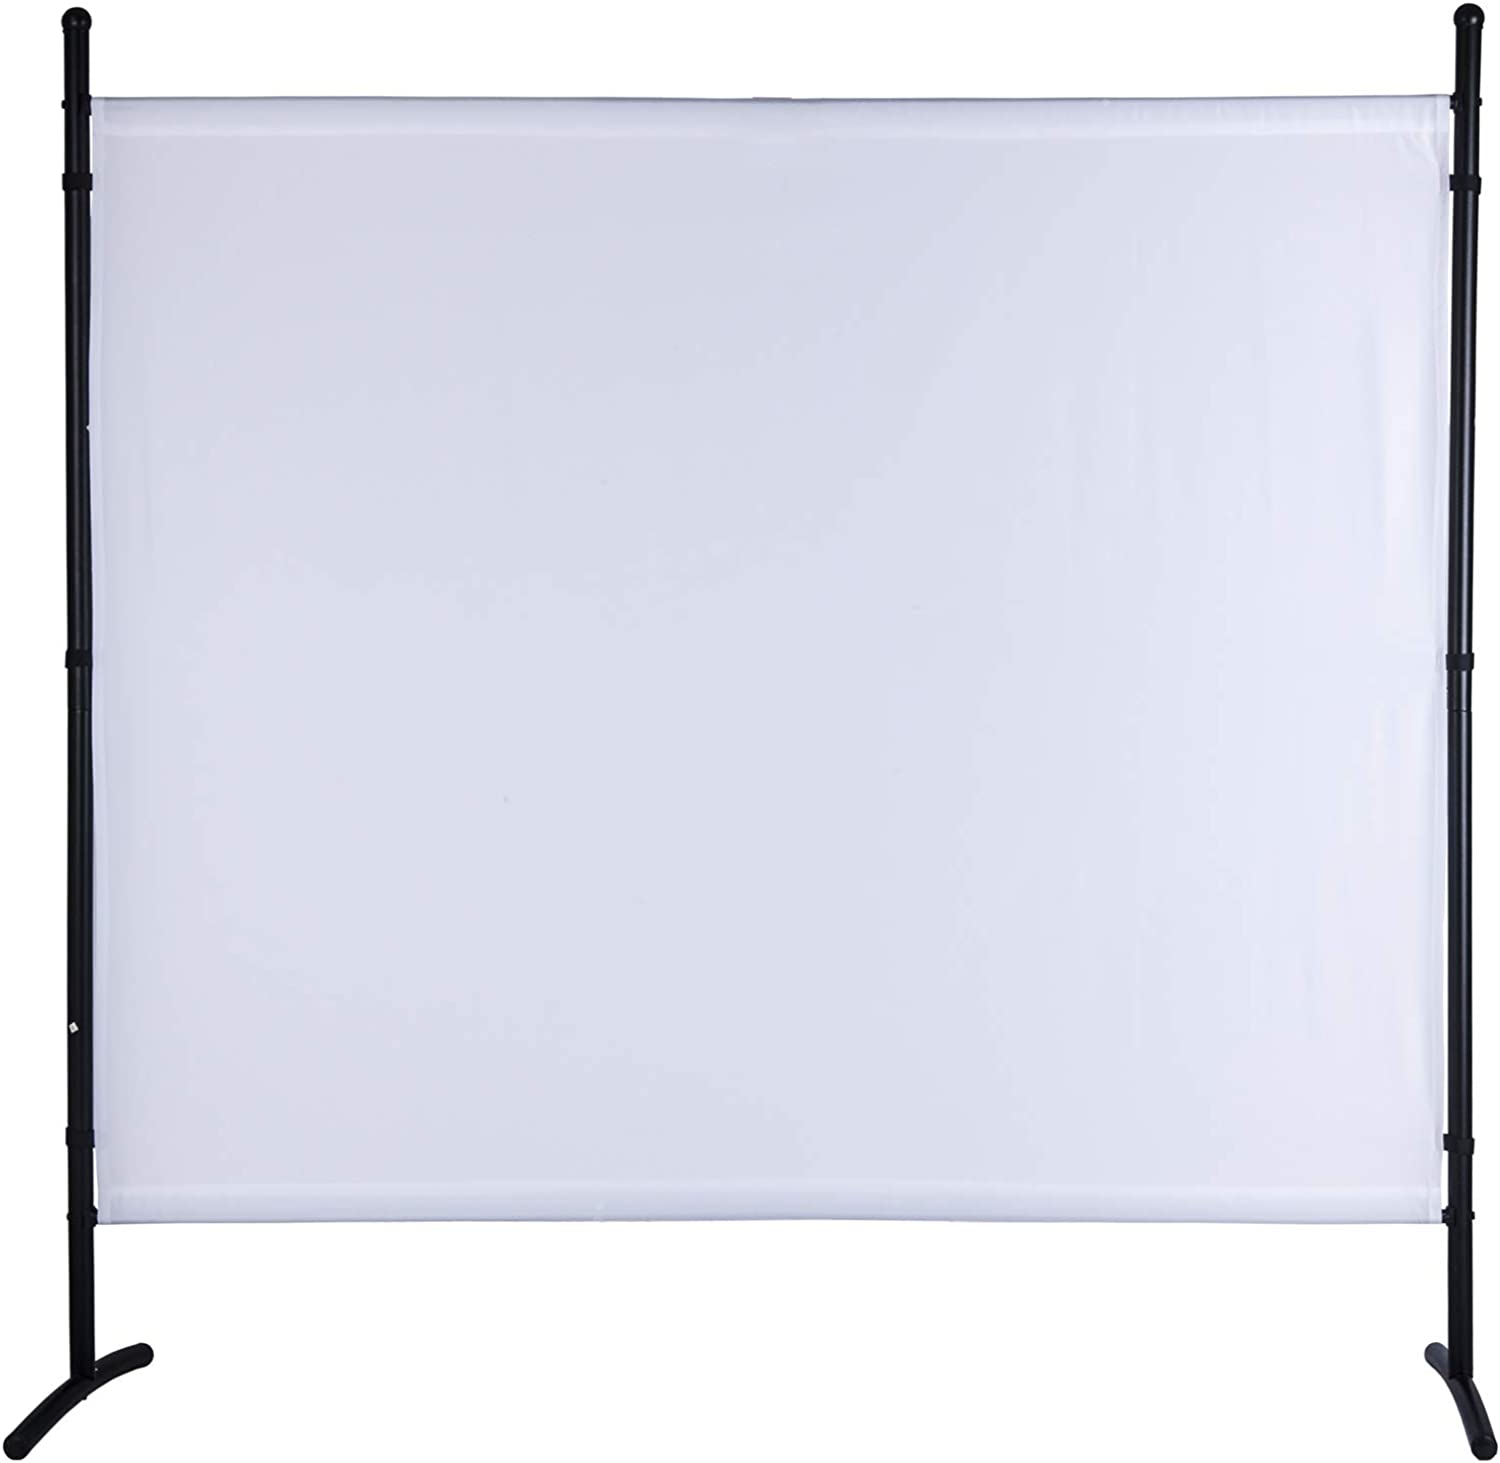 Room Divider 72 inch Privacy Screens 6 Ft Portable Partition Screen Steel Frame& Frabic Office Partition for Home Office Dorm Decor White